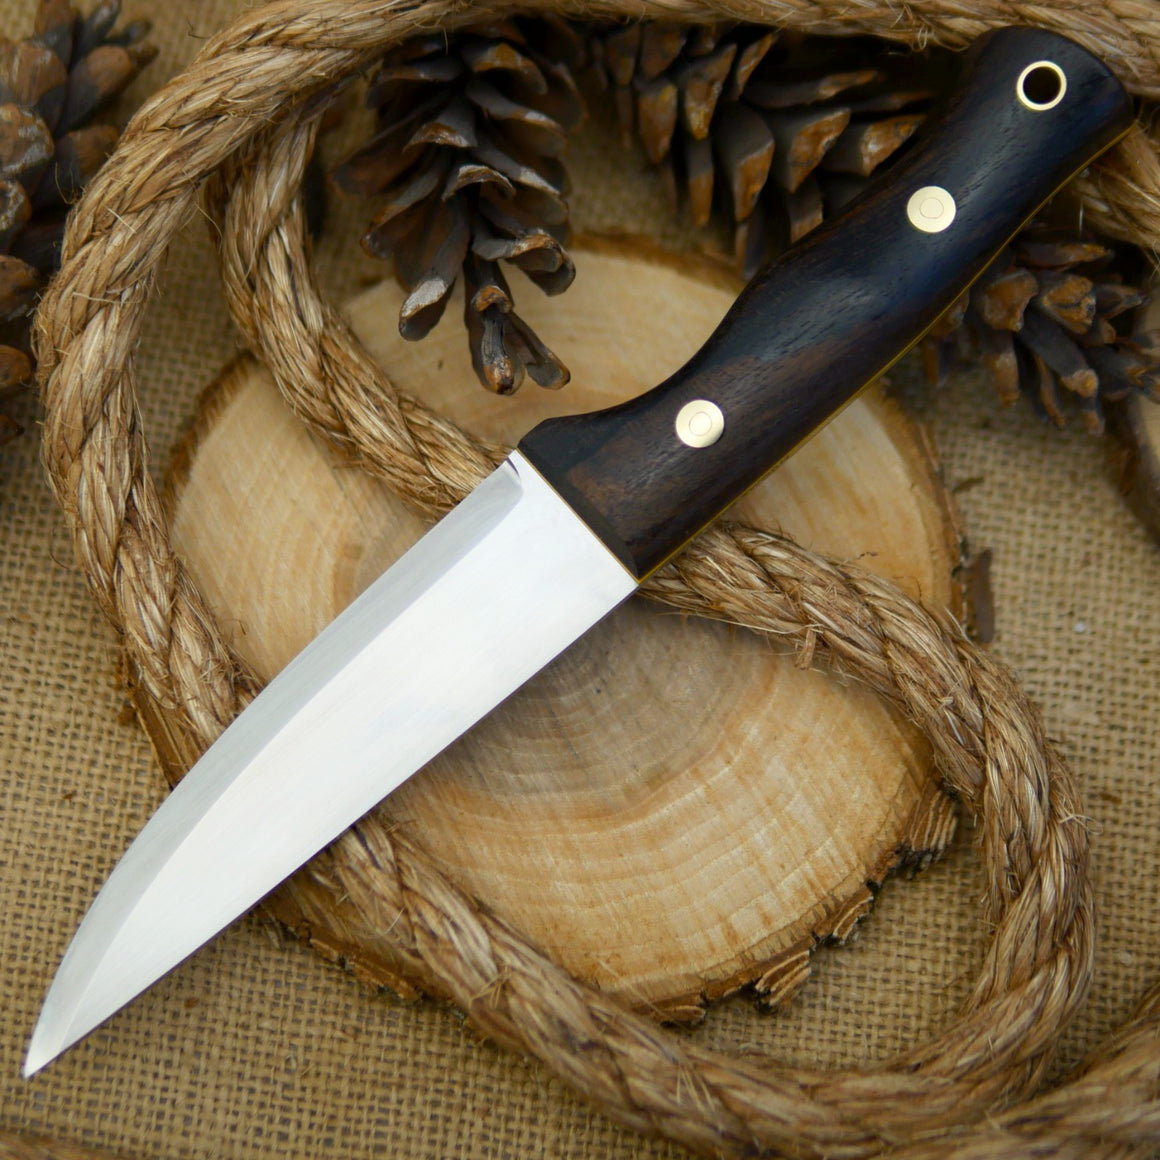 An Adventure Sworn Tradesman bushcraft knife with ziricote handle scales.